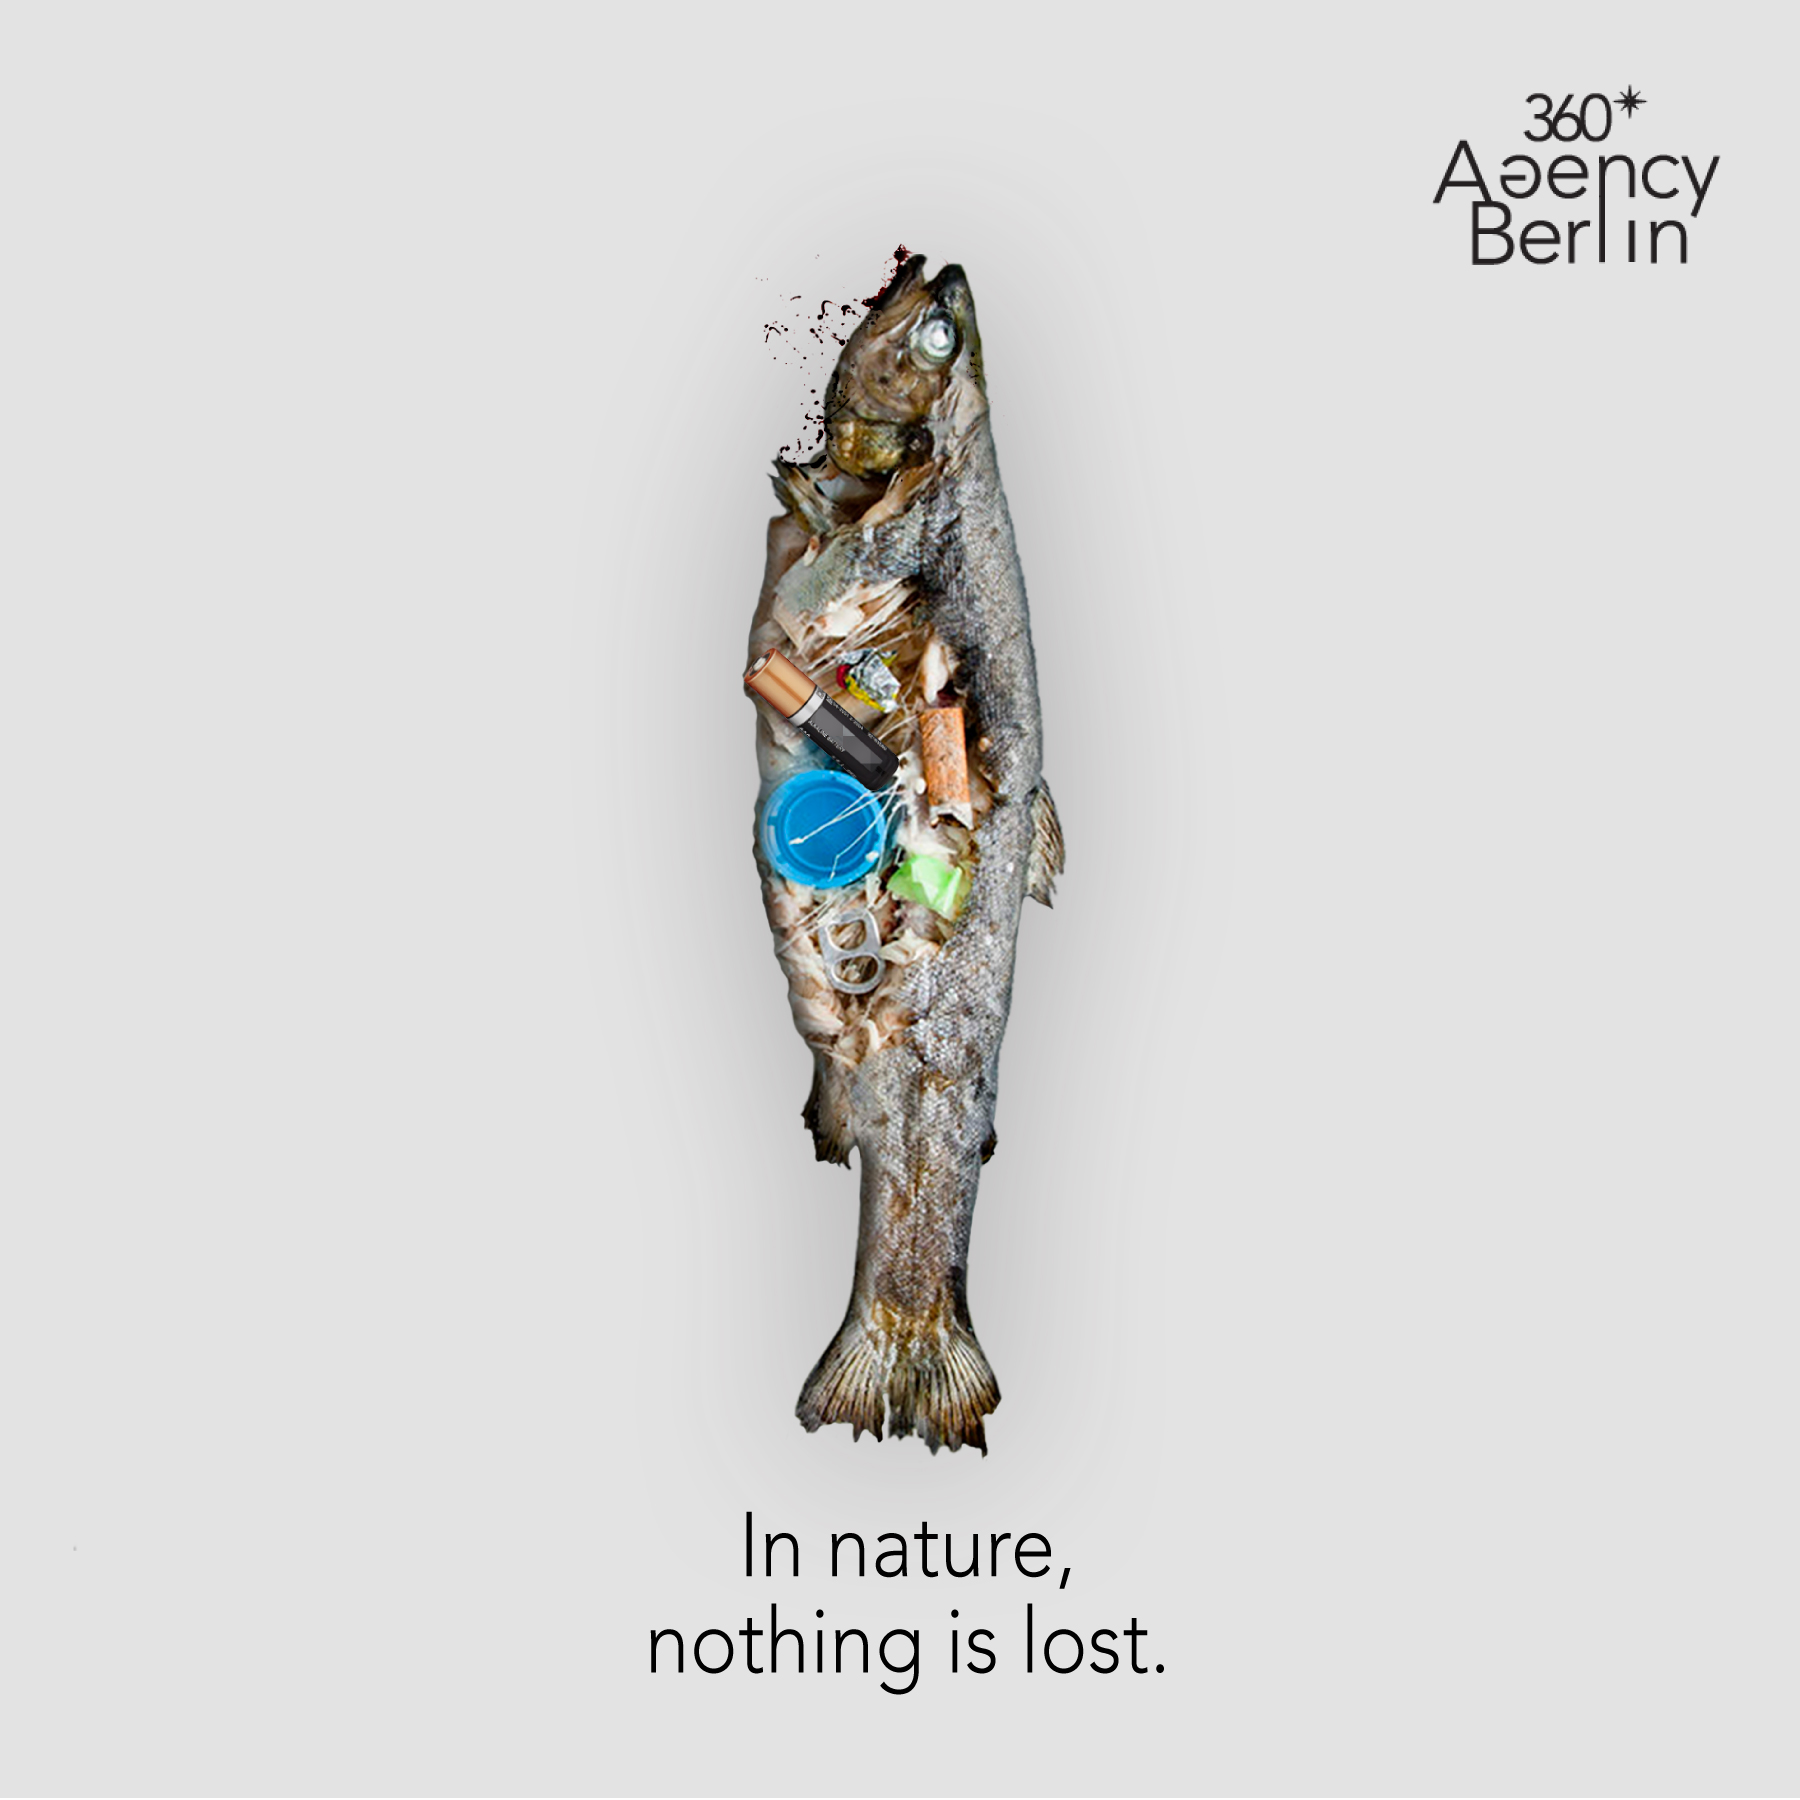 In+Nature+Nothing+is+lost 360 Agency Berlin.jpg